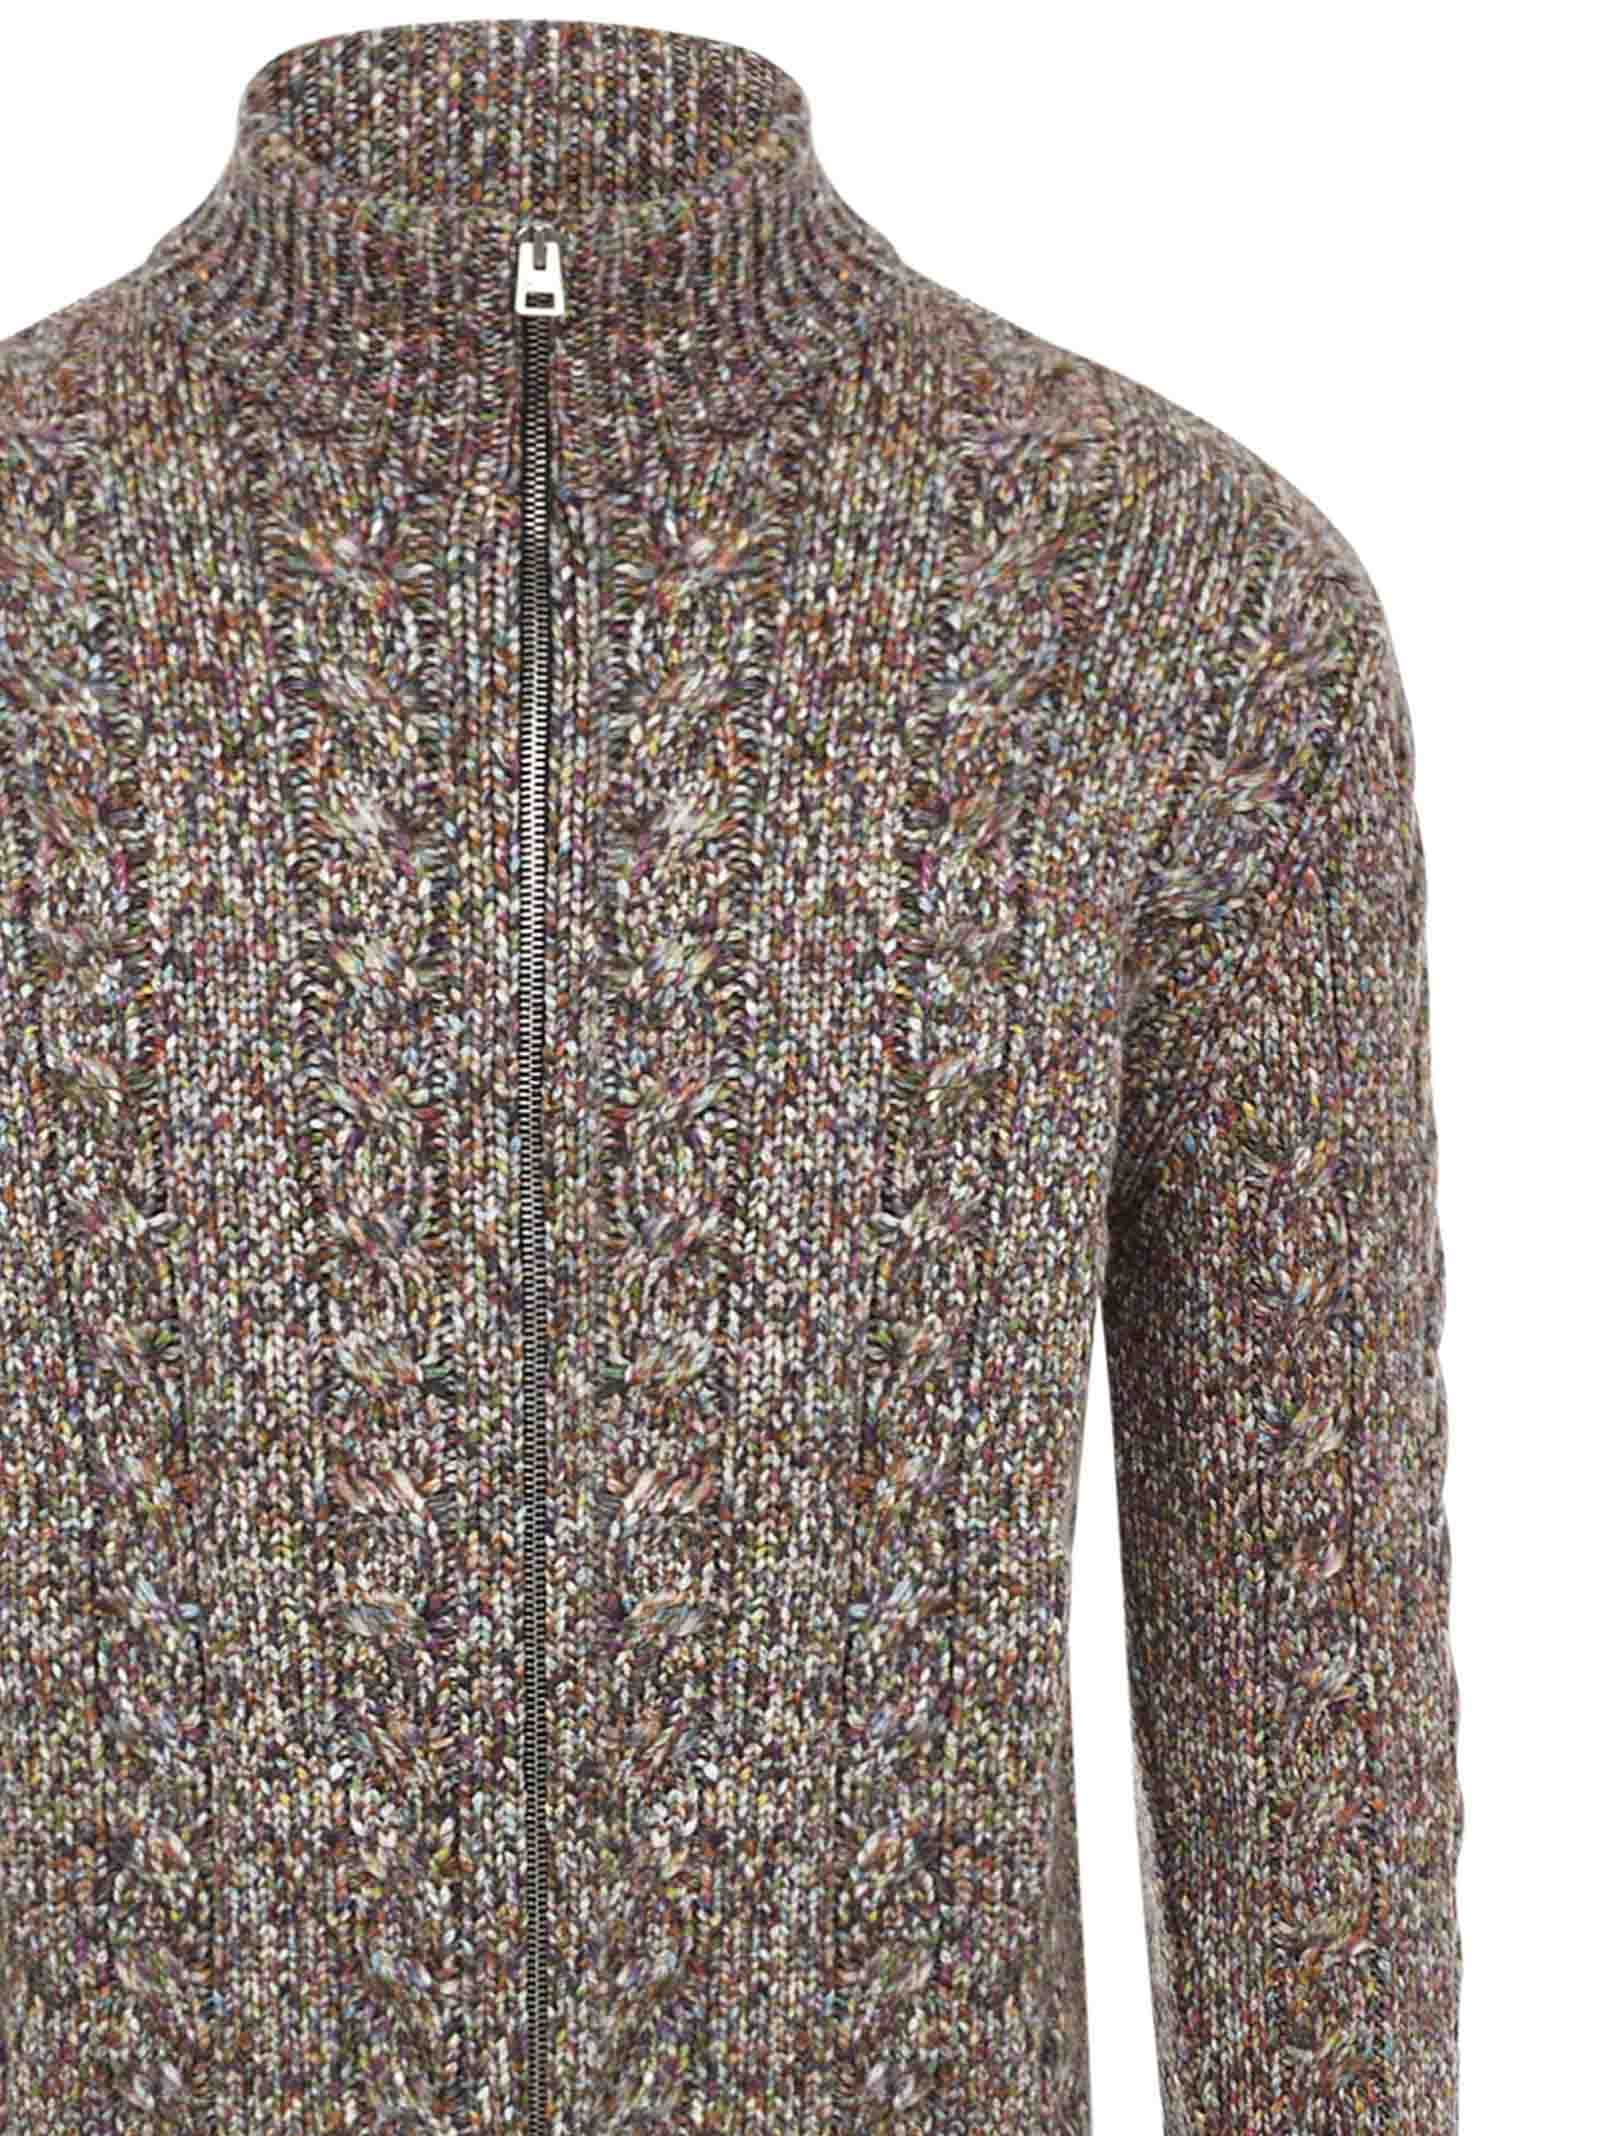 Cheap And Nice Etro Cardigan - Top Quality